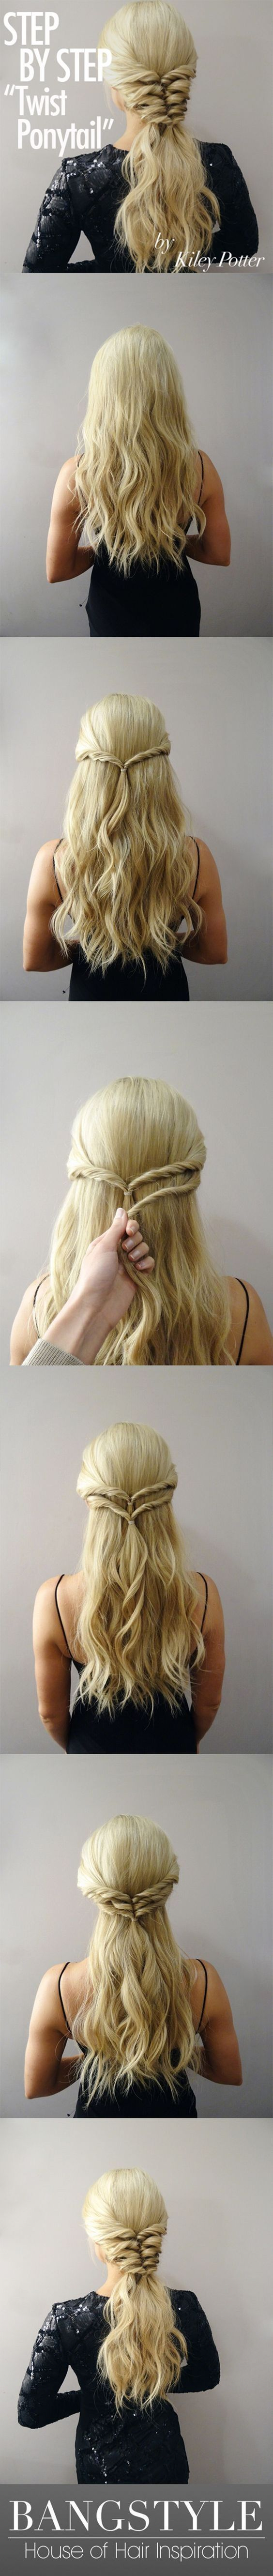 See the latest hairstyles on our tumblr itus awsome easy